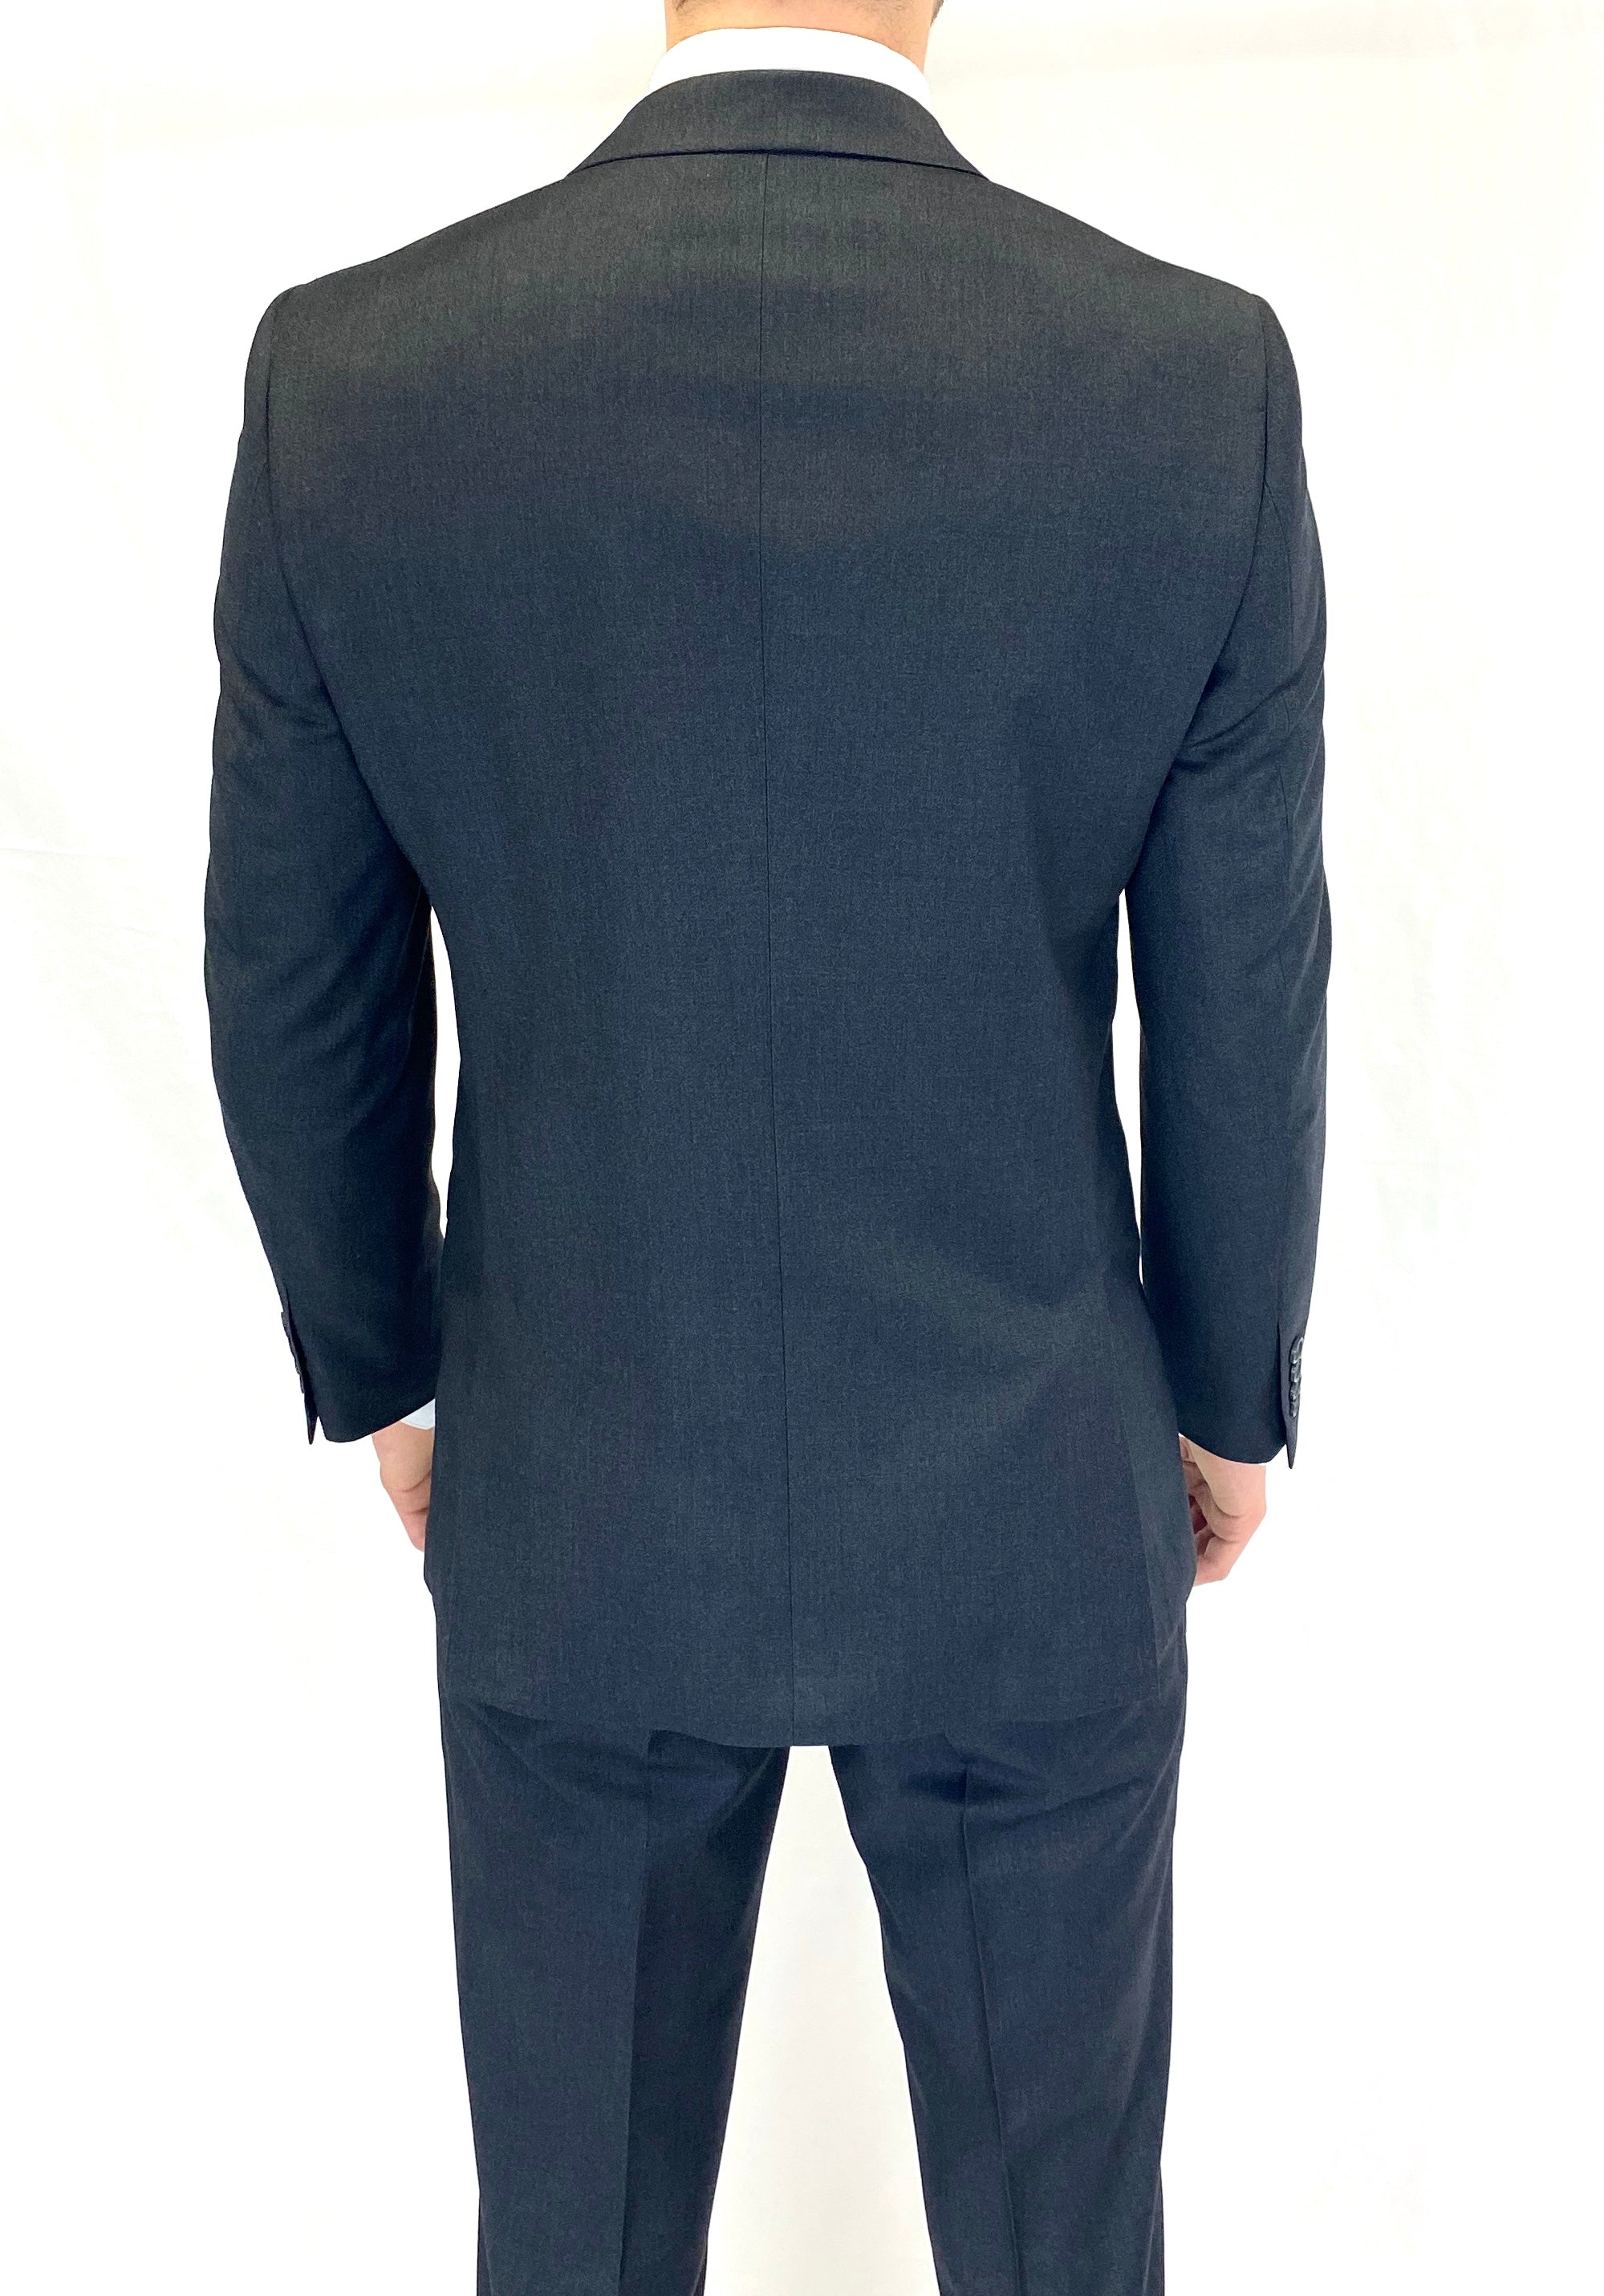 Renoir Slim Fit Suit in Charcoal